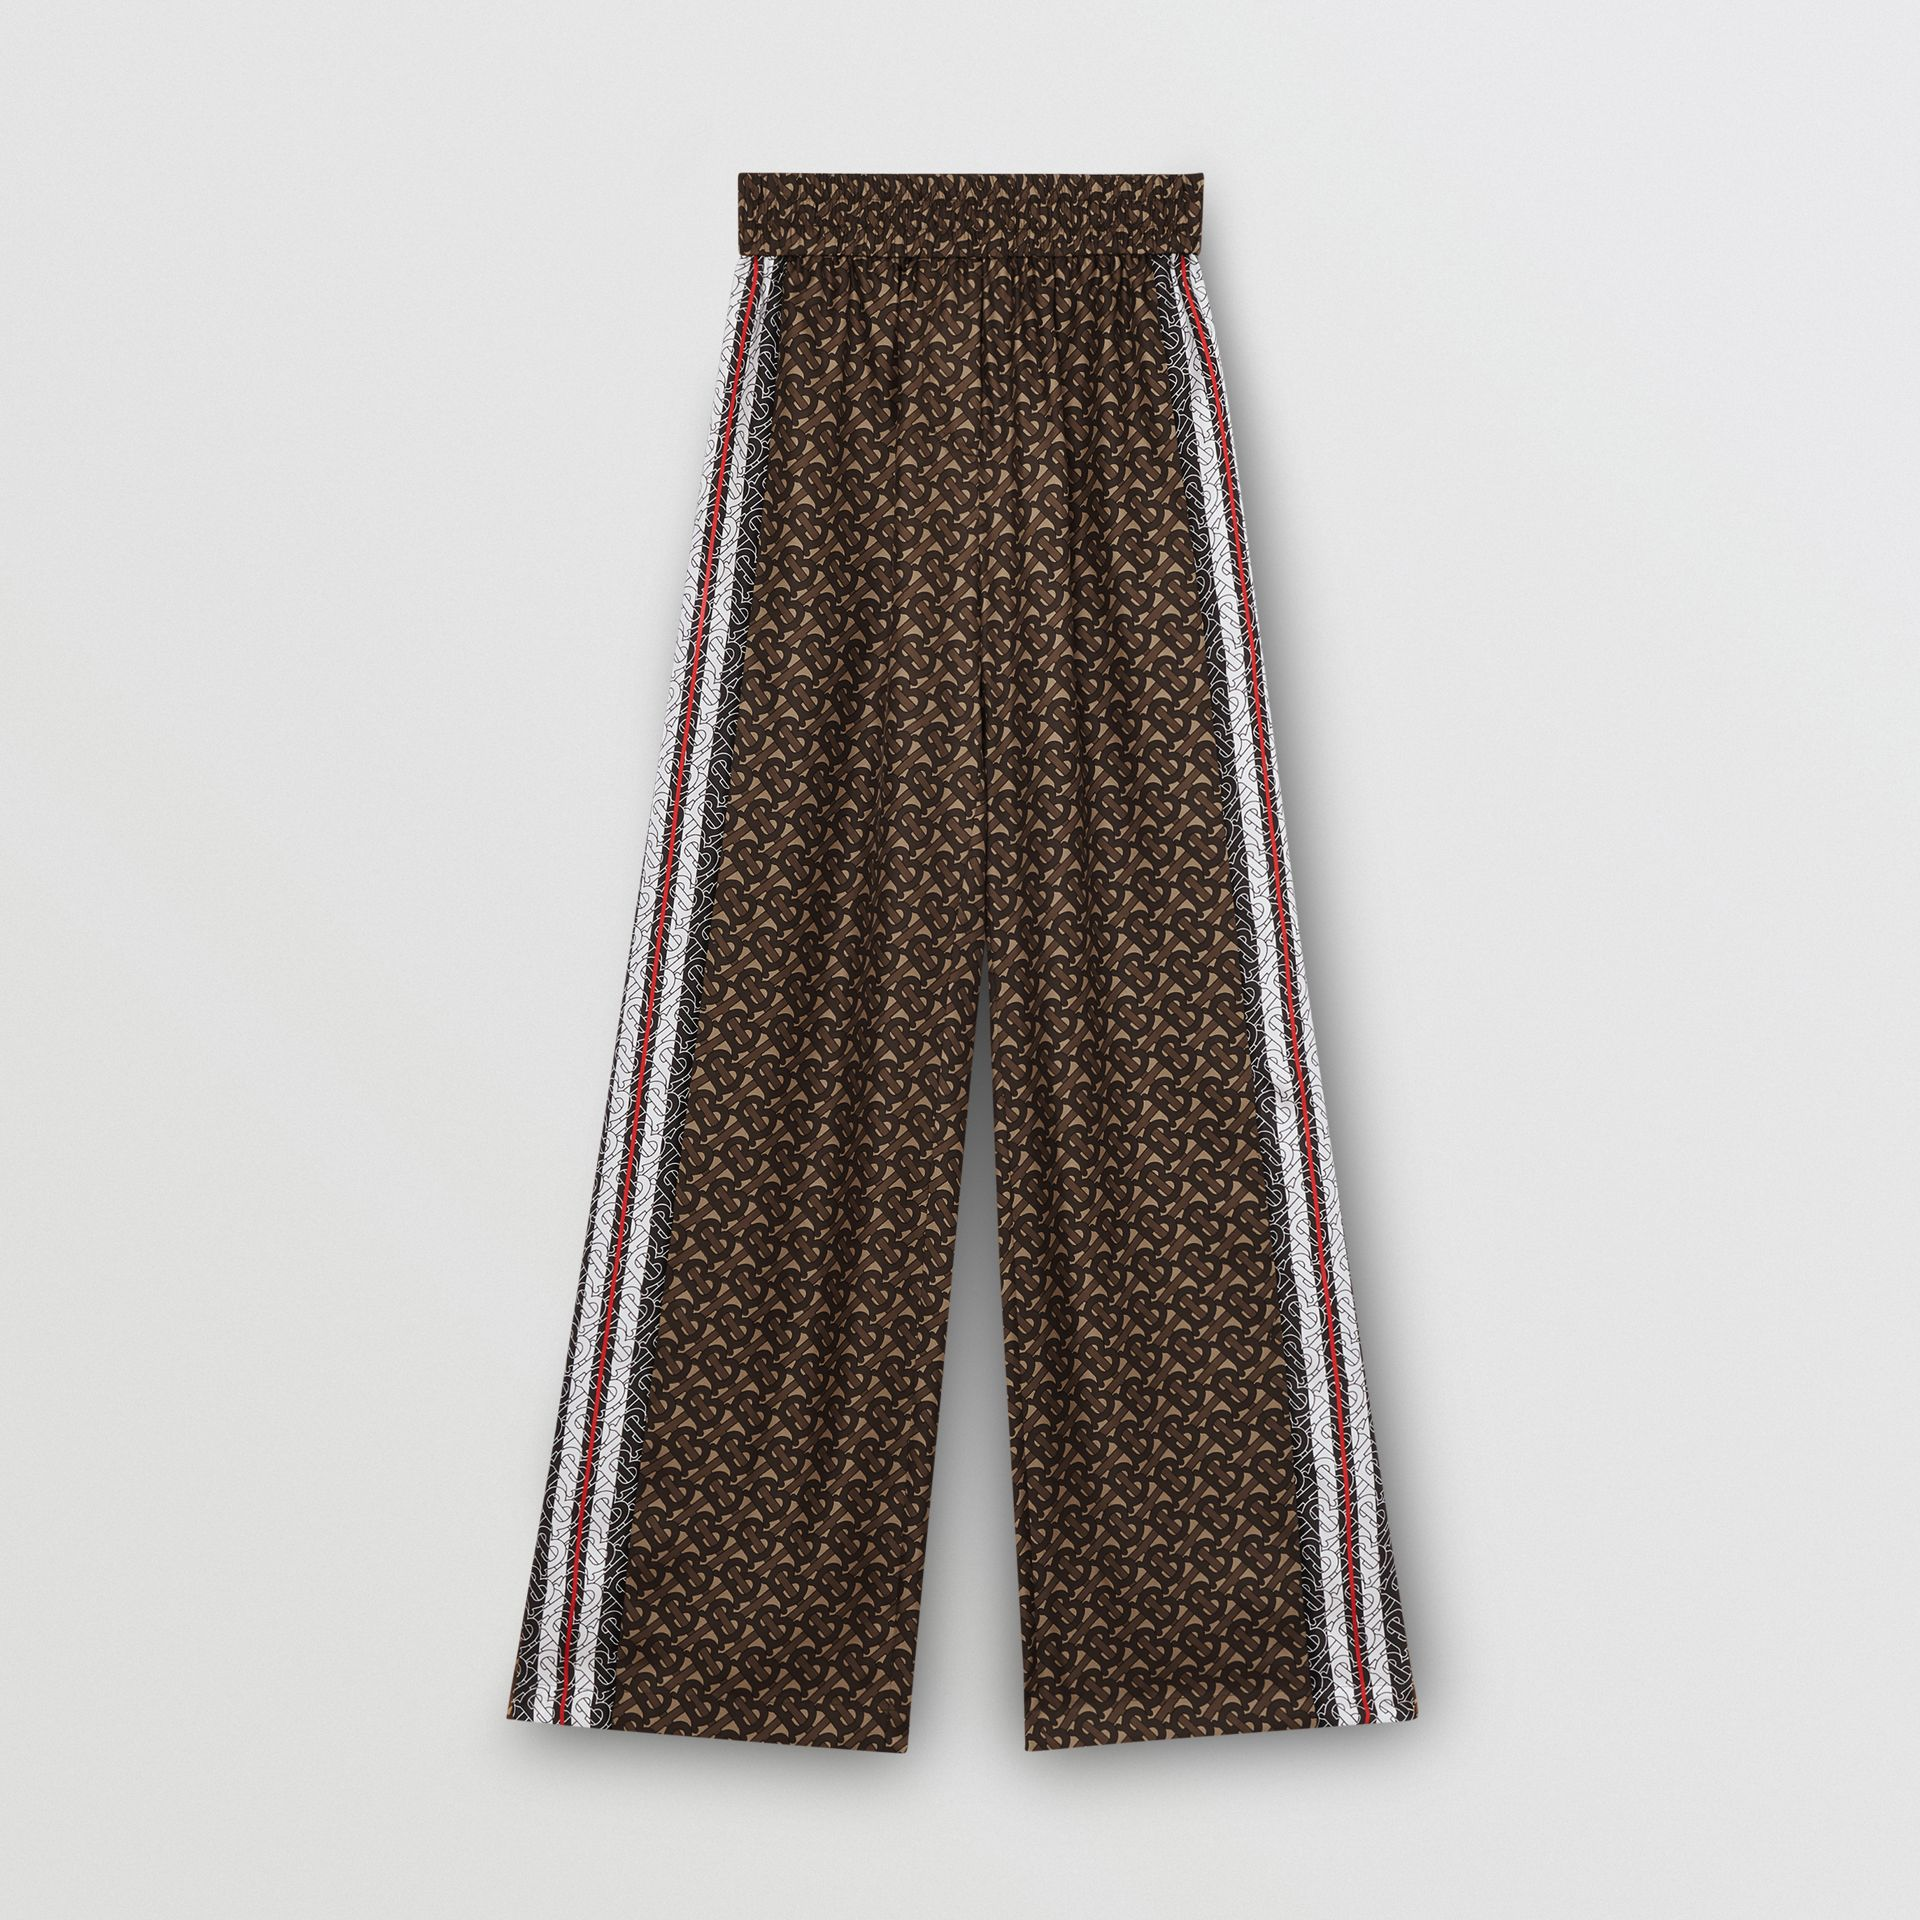 Monogram Stripe Print Silk Trousers in Bridle Brown - Women | Burberry - gallery image 3